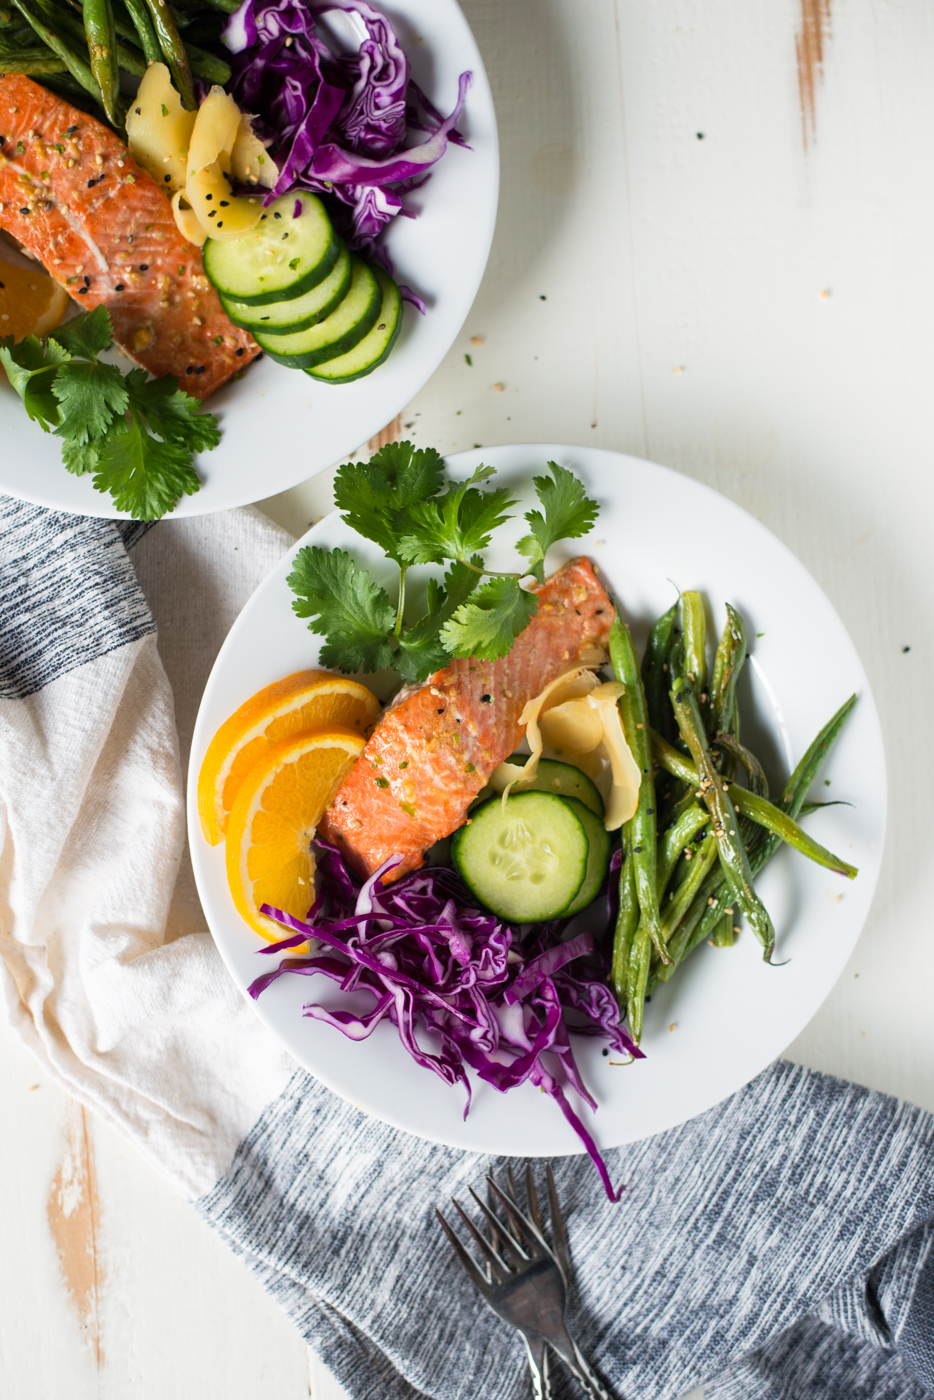 Easy, quick, incredibly delicious, and made in just one pan, Sheet Pan Ginger-Orange Salmon Bowls are just the thing for dinner tonight! Gluten-free, dairy-free, soy-free, grain-free, paleo, and Whole30 friendly.